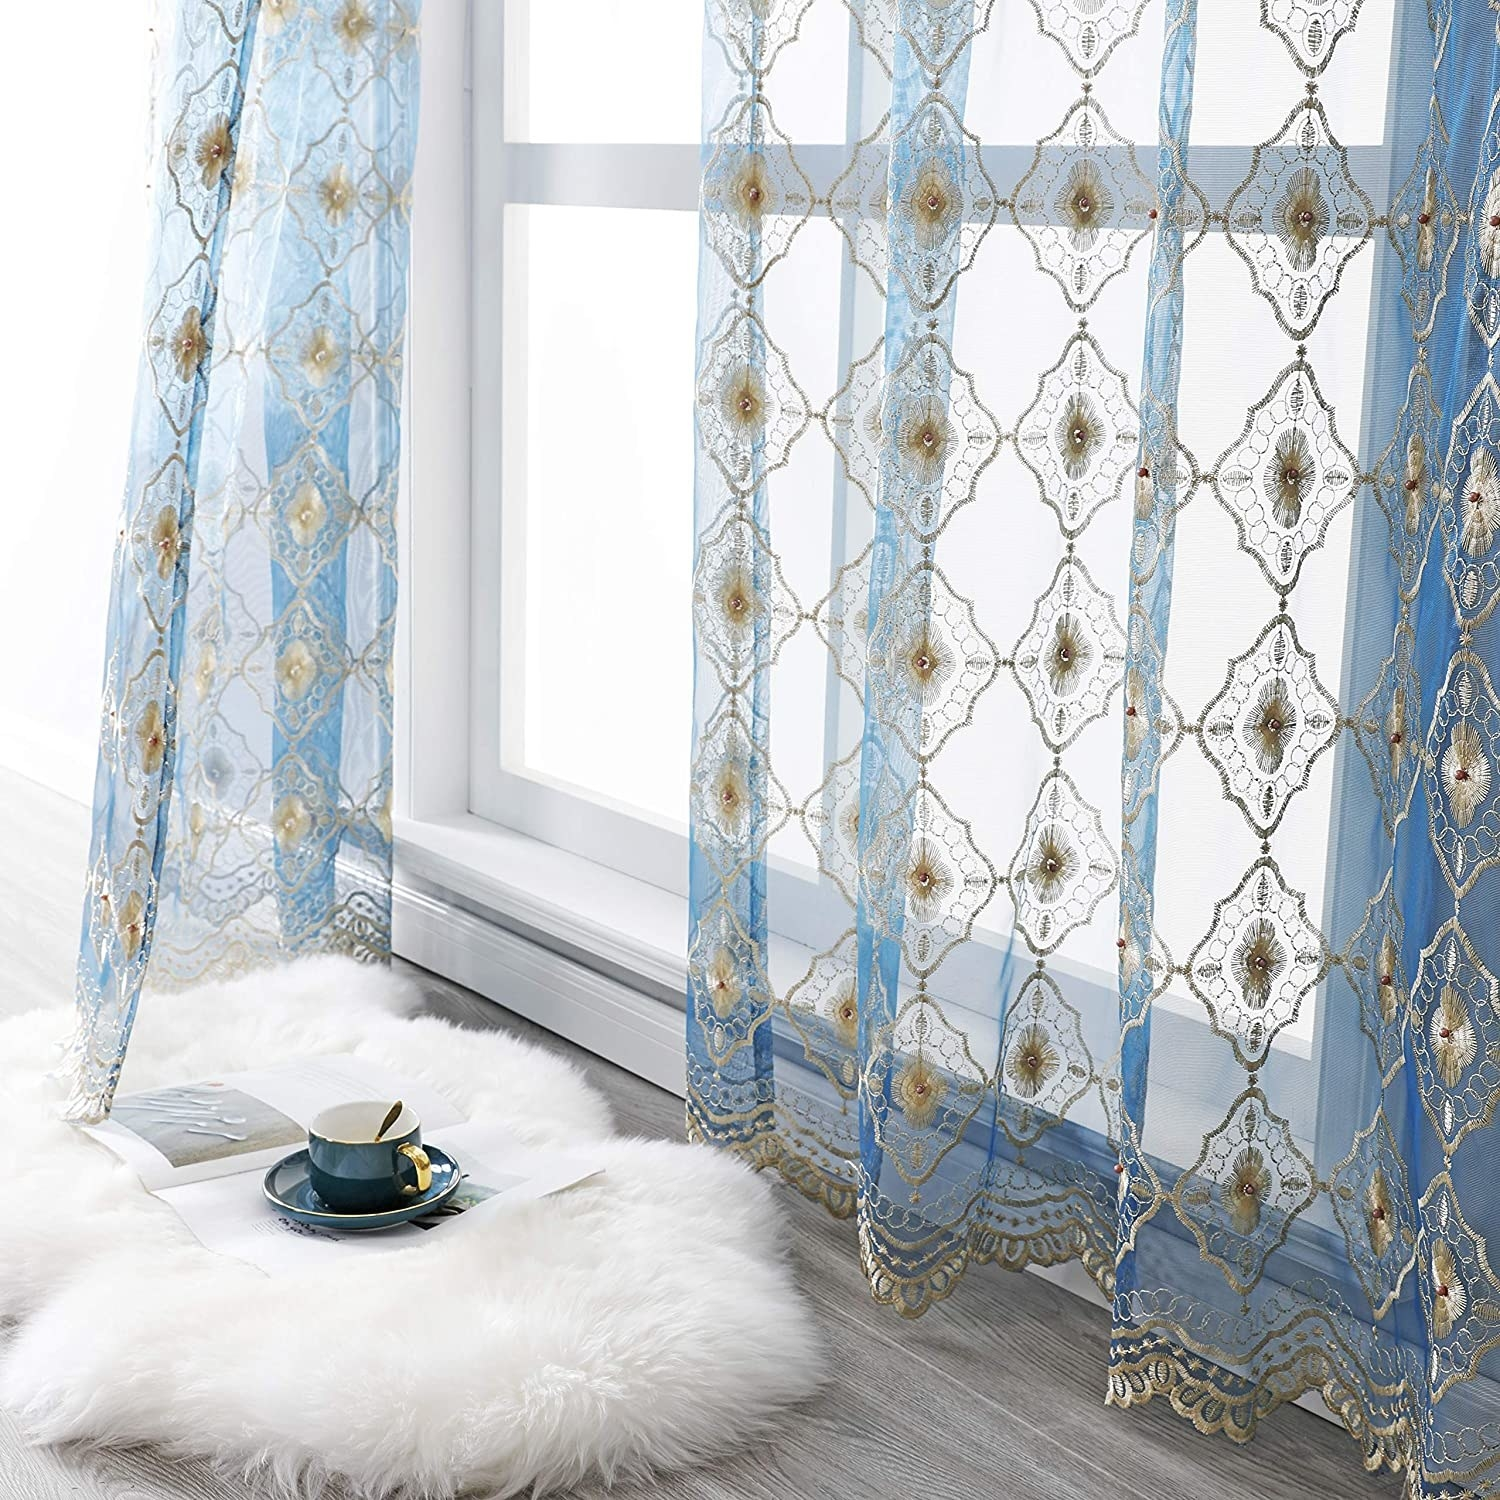 Beaded sheer curtains with lace details on the bottoms